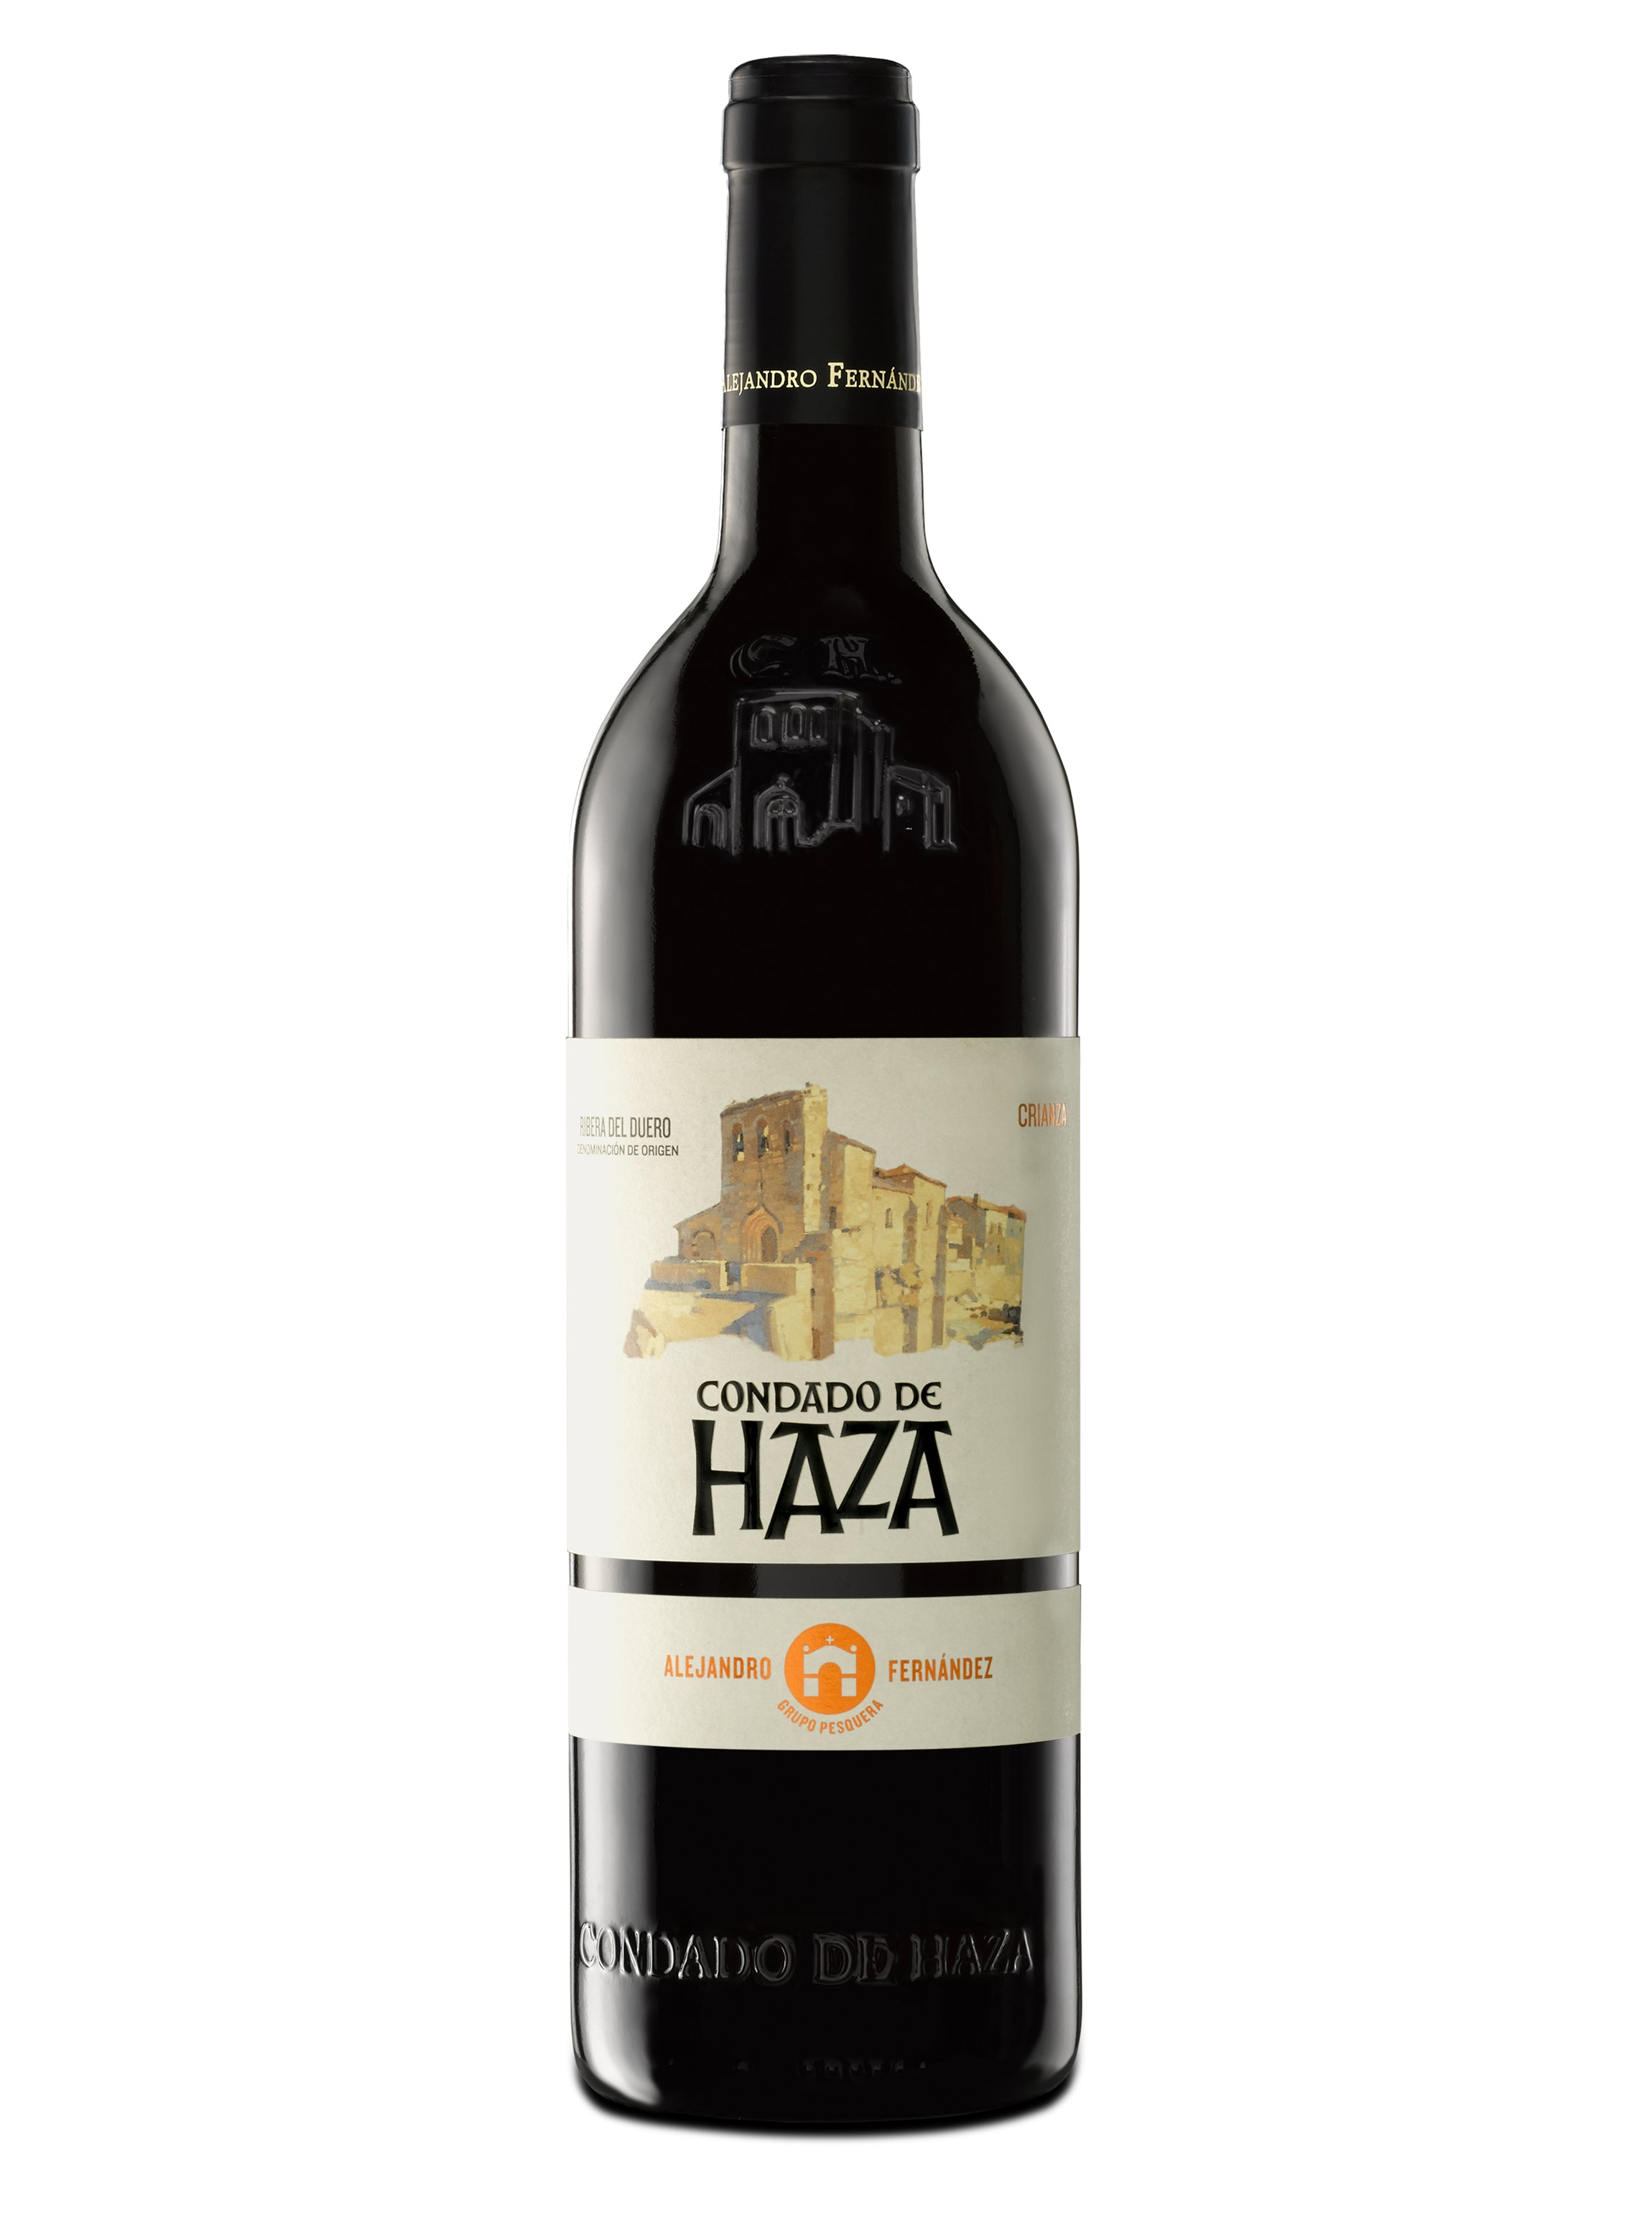 Condado De Haza, Alejandro Fernandez, Sanish Wine, Crianza, Tempernillo, Online Wine Store, Restaurant Month Wine, Auckland Restaurant Month, Online Wine Shop, New Zealand Wine Store